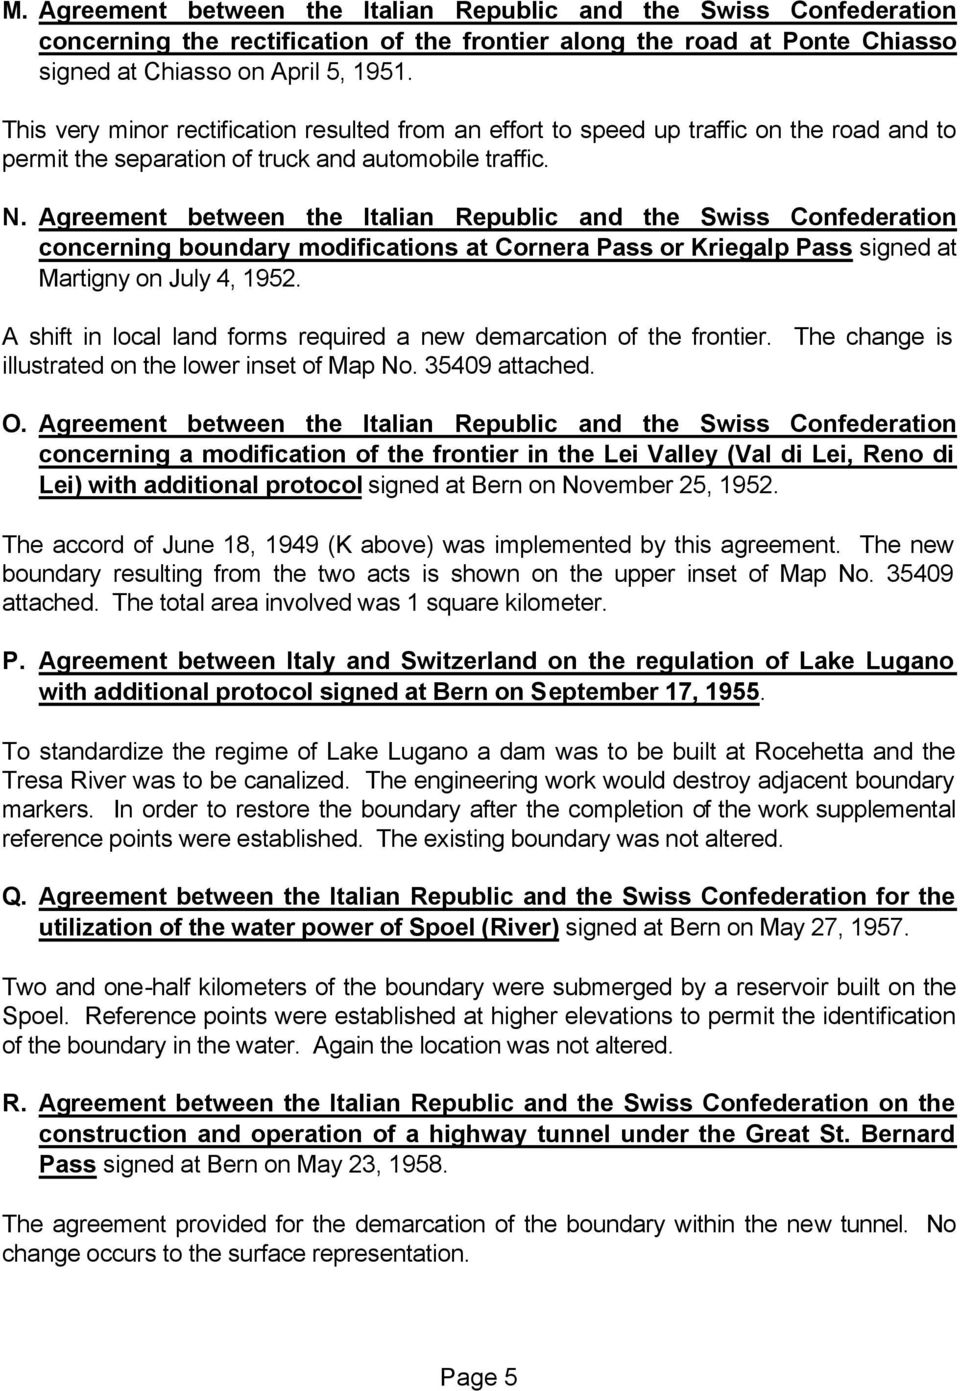 Agreement between the Italian Republic and the Swiss Confederation concerning boundary modifications at Cornera Pass or Kriegalp Pass signed at Martigny on July 4, 1952.